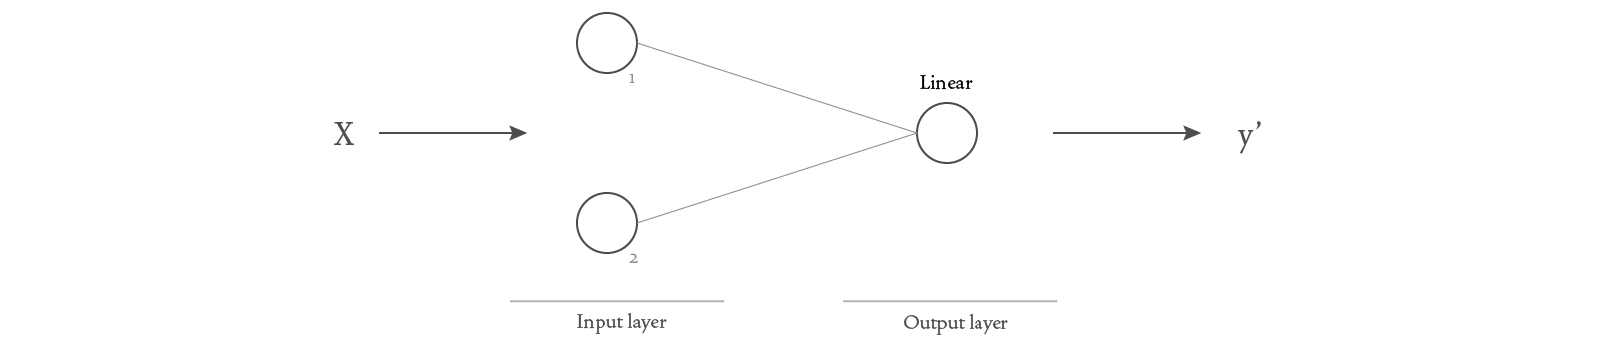 Diagram of a basic neural network.